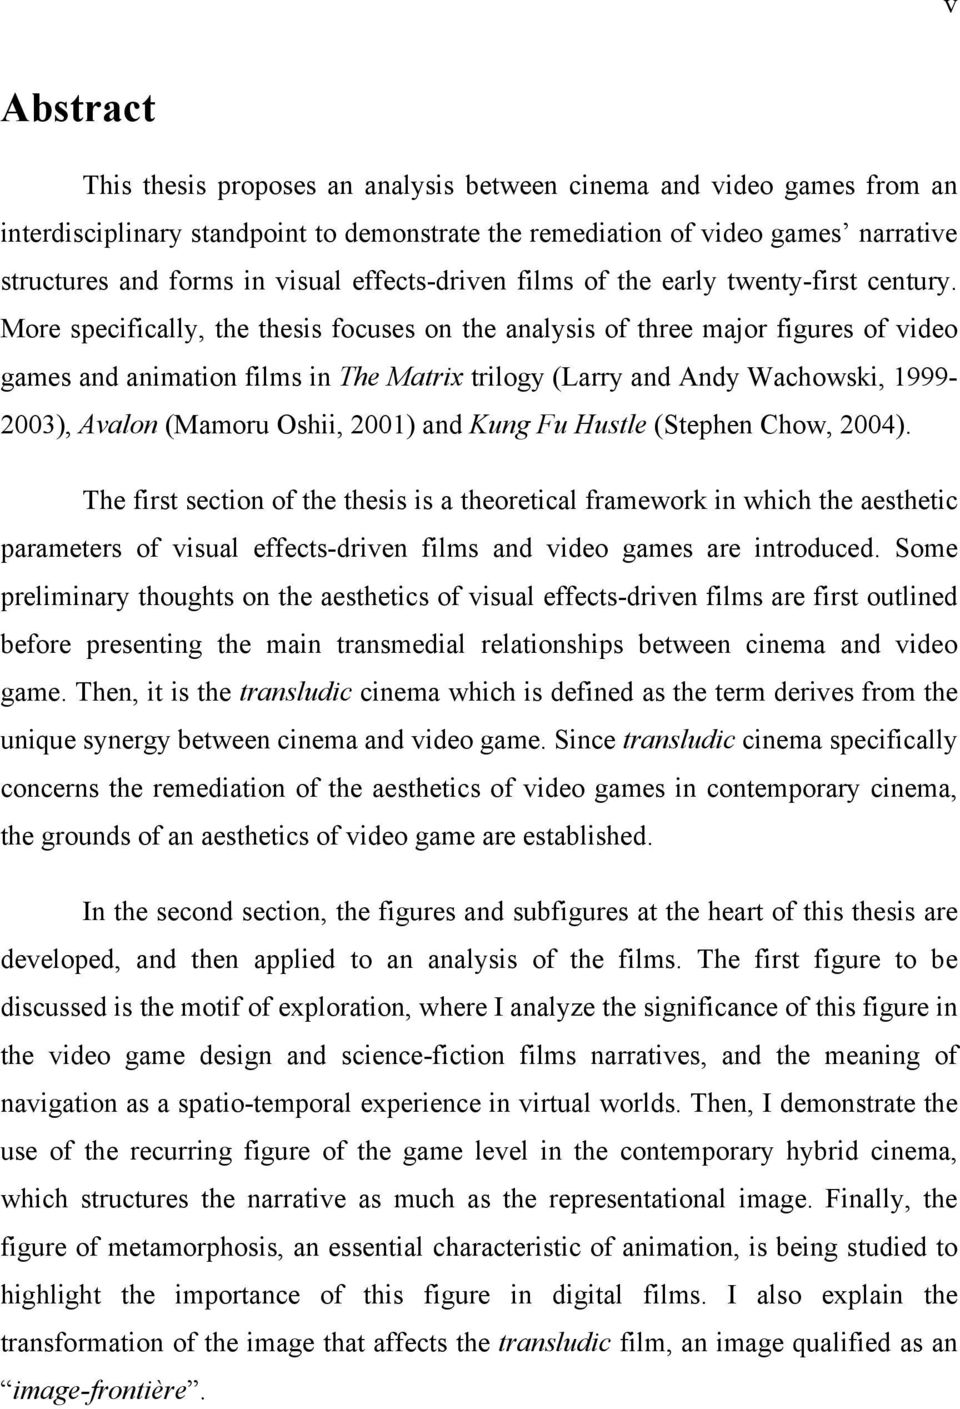 More specifically, the thesis focuses on the analysis of three major figures of video games and animation films in The Matrix trilogy (Larry and Andy Wachowski, 1999-2003), Avalon (Mamoru Oshii,